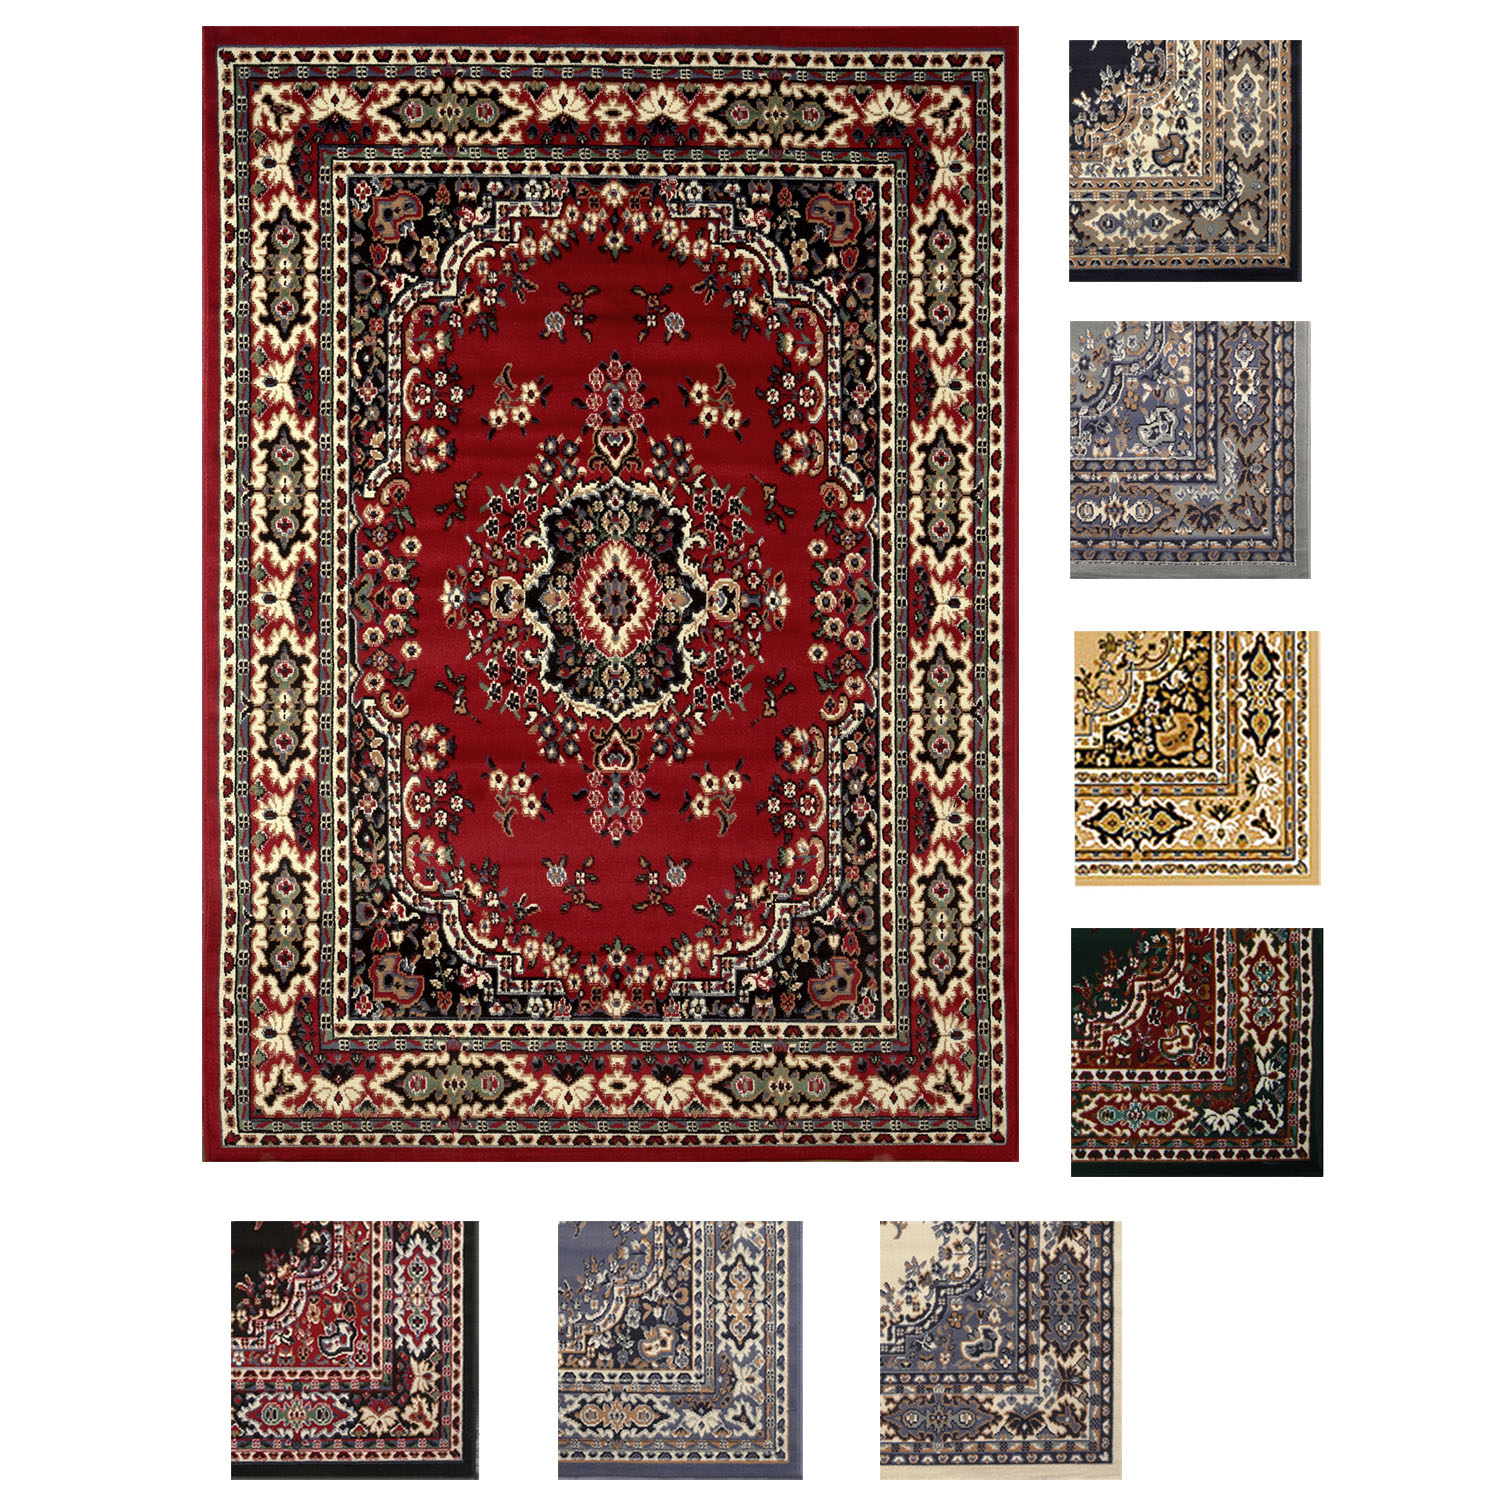 Traditional persian style rugs large traditional 8x11 oriental area rug persian style carpet -approx  7u00278 DIVBGVG